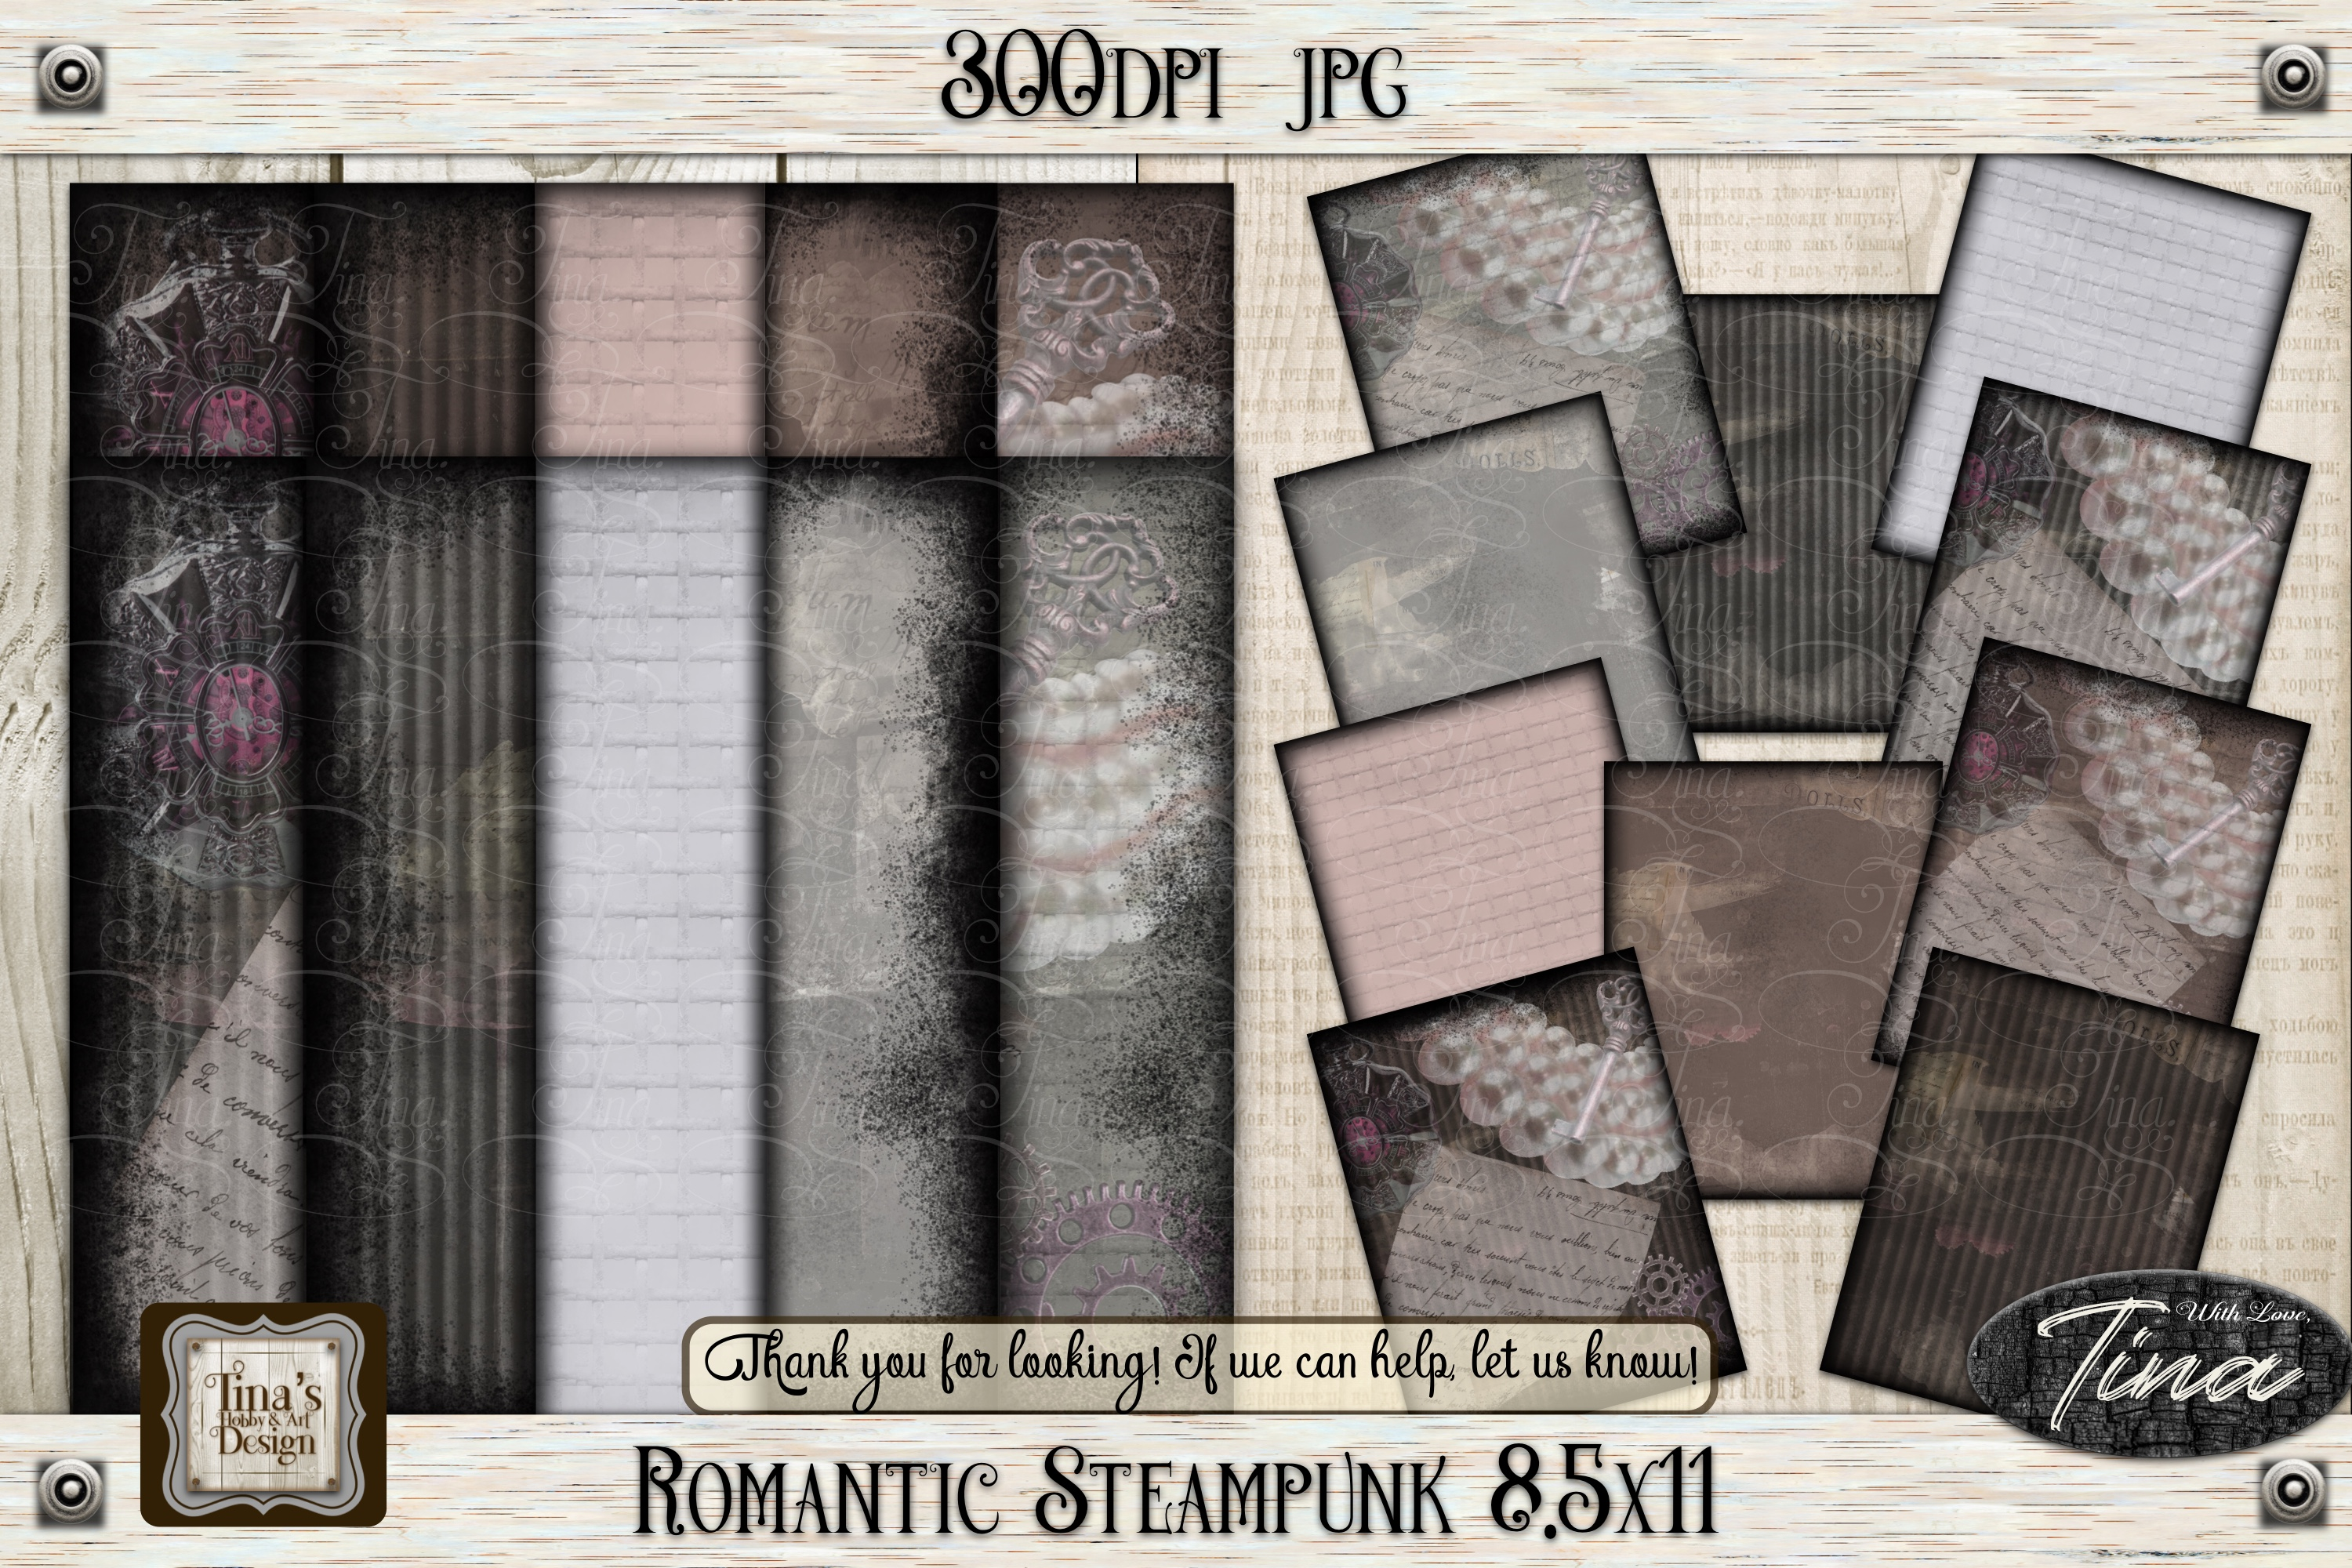 Romantic Steampunk Tags 1 Collage Mauve Grunge 101918RST1 example image 2